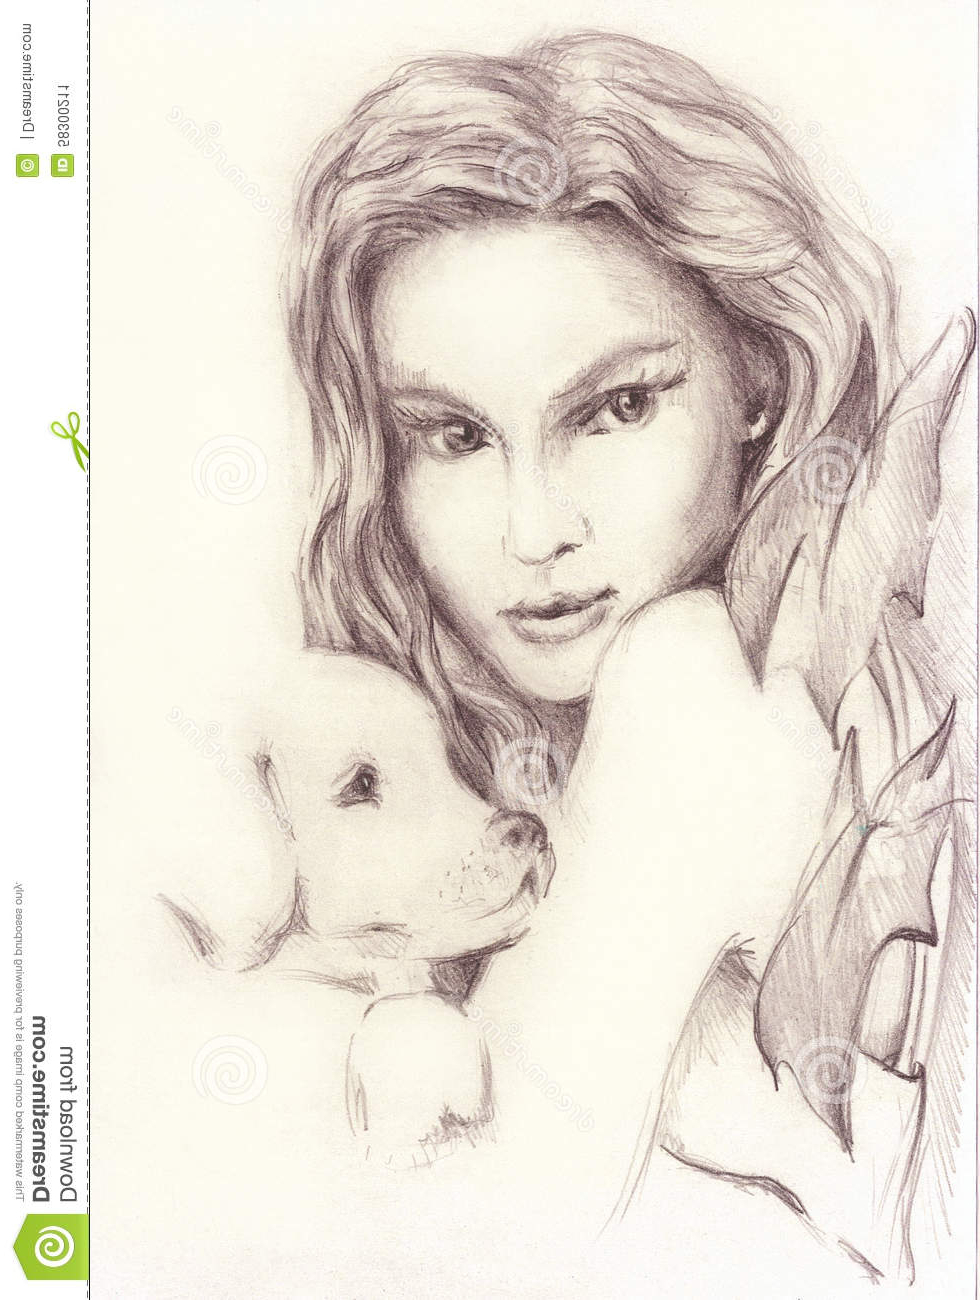 980x1300 Beautiful Girls Pencil Drawing Image Beautiful Girl With A Small